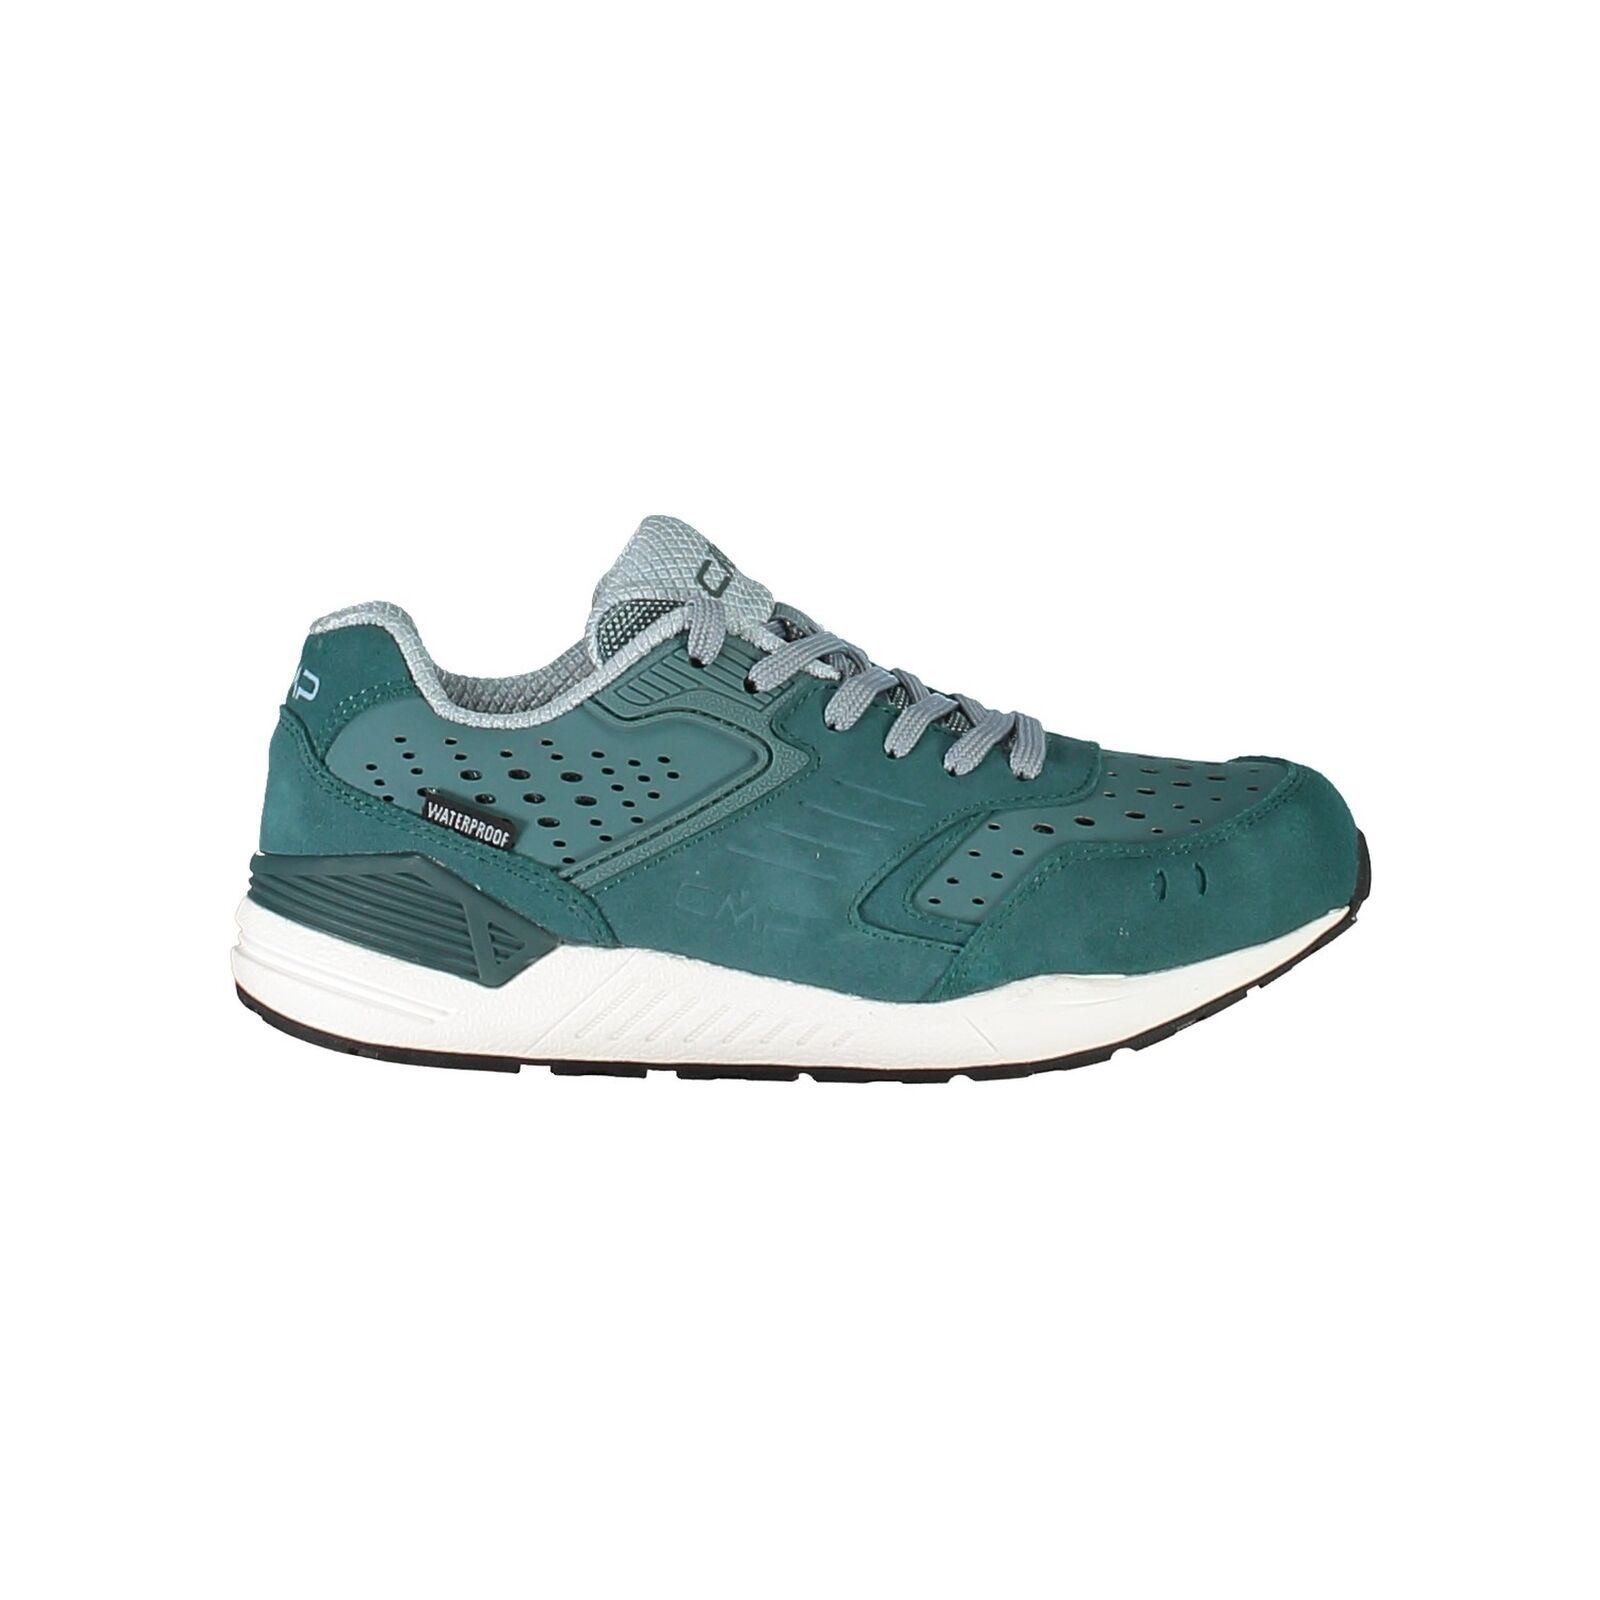 CMP Trainers Kuma Trainers Women's Lifestyle shoes Wp Green Waterproof